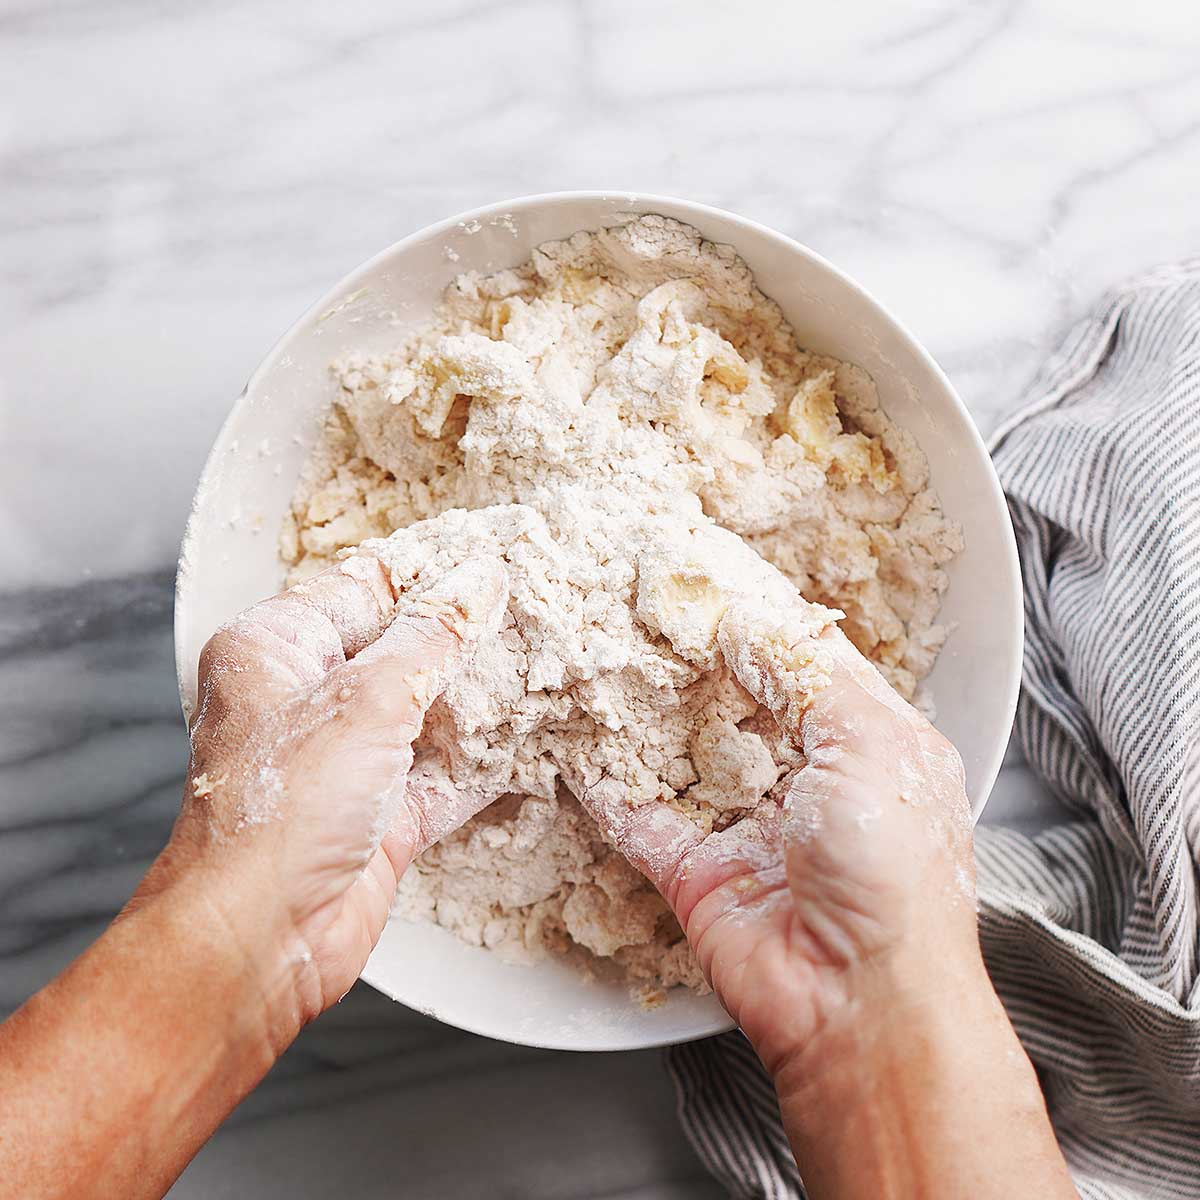 Mixing flour and butter in a large white bowl.